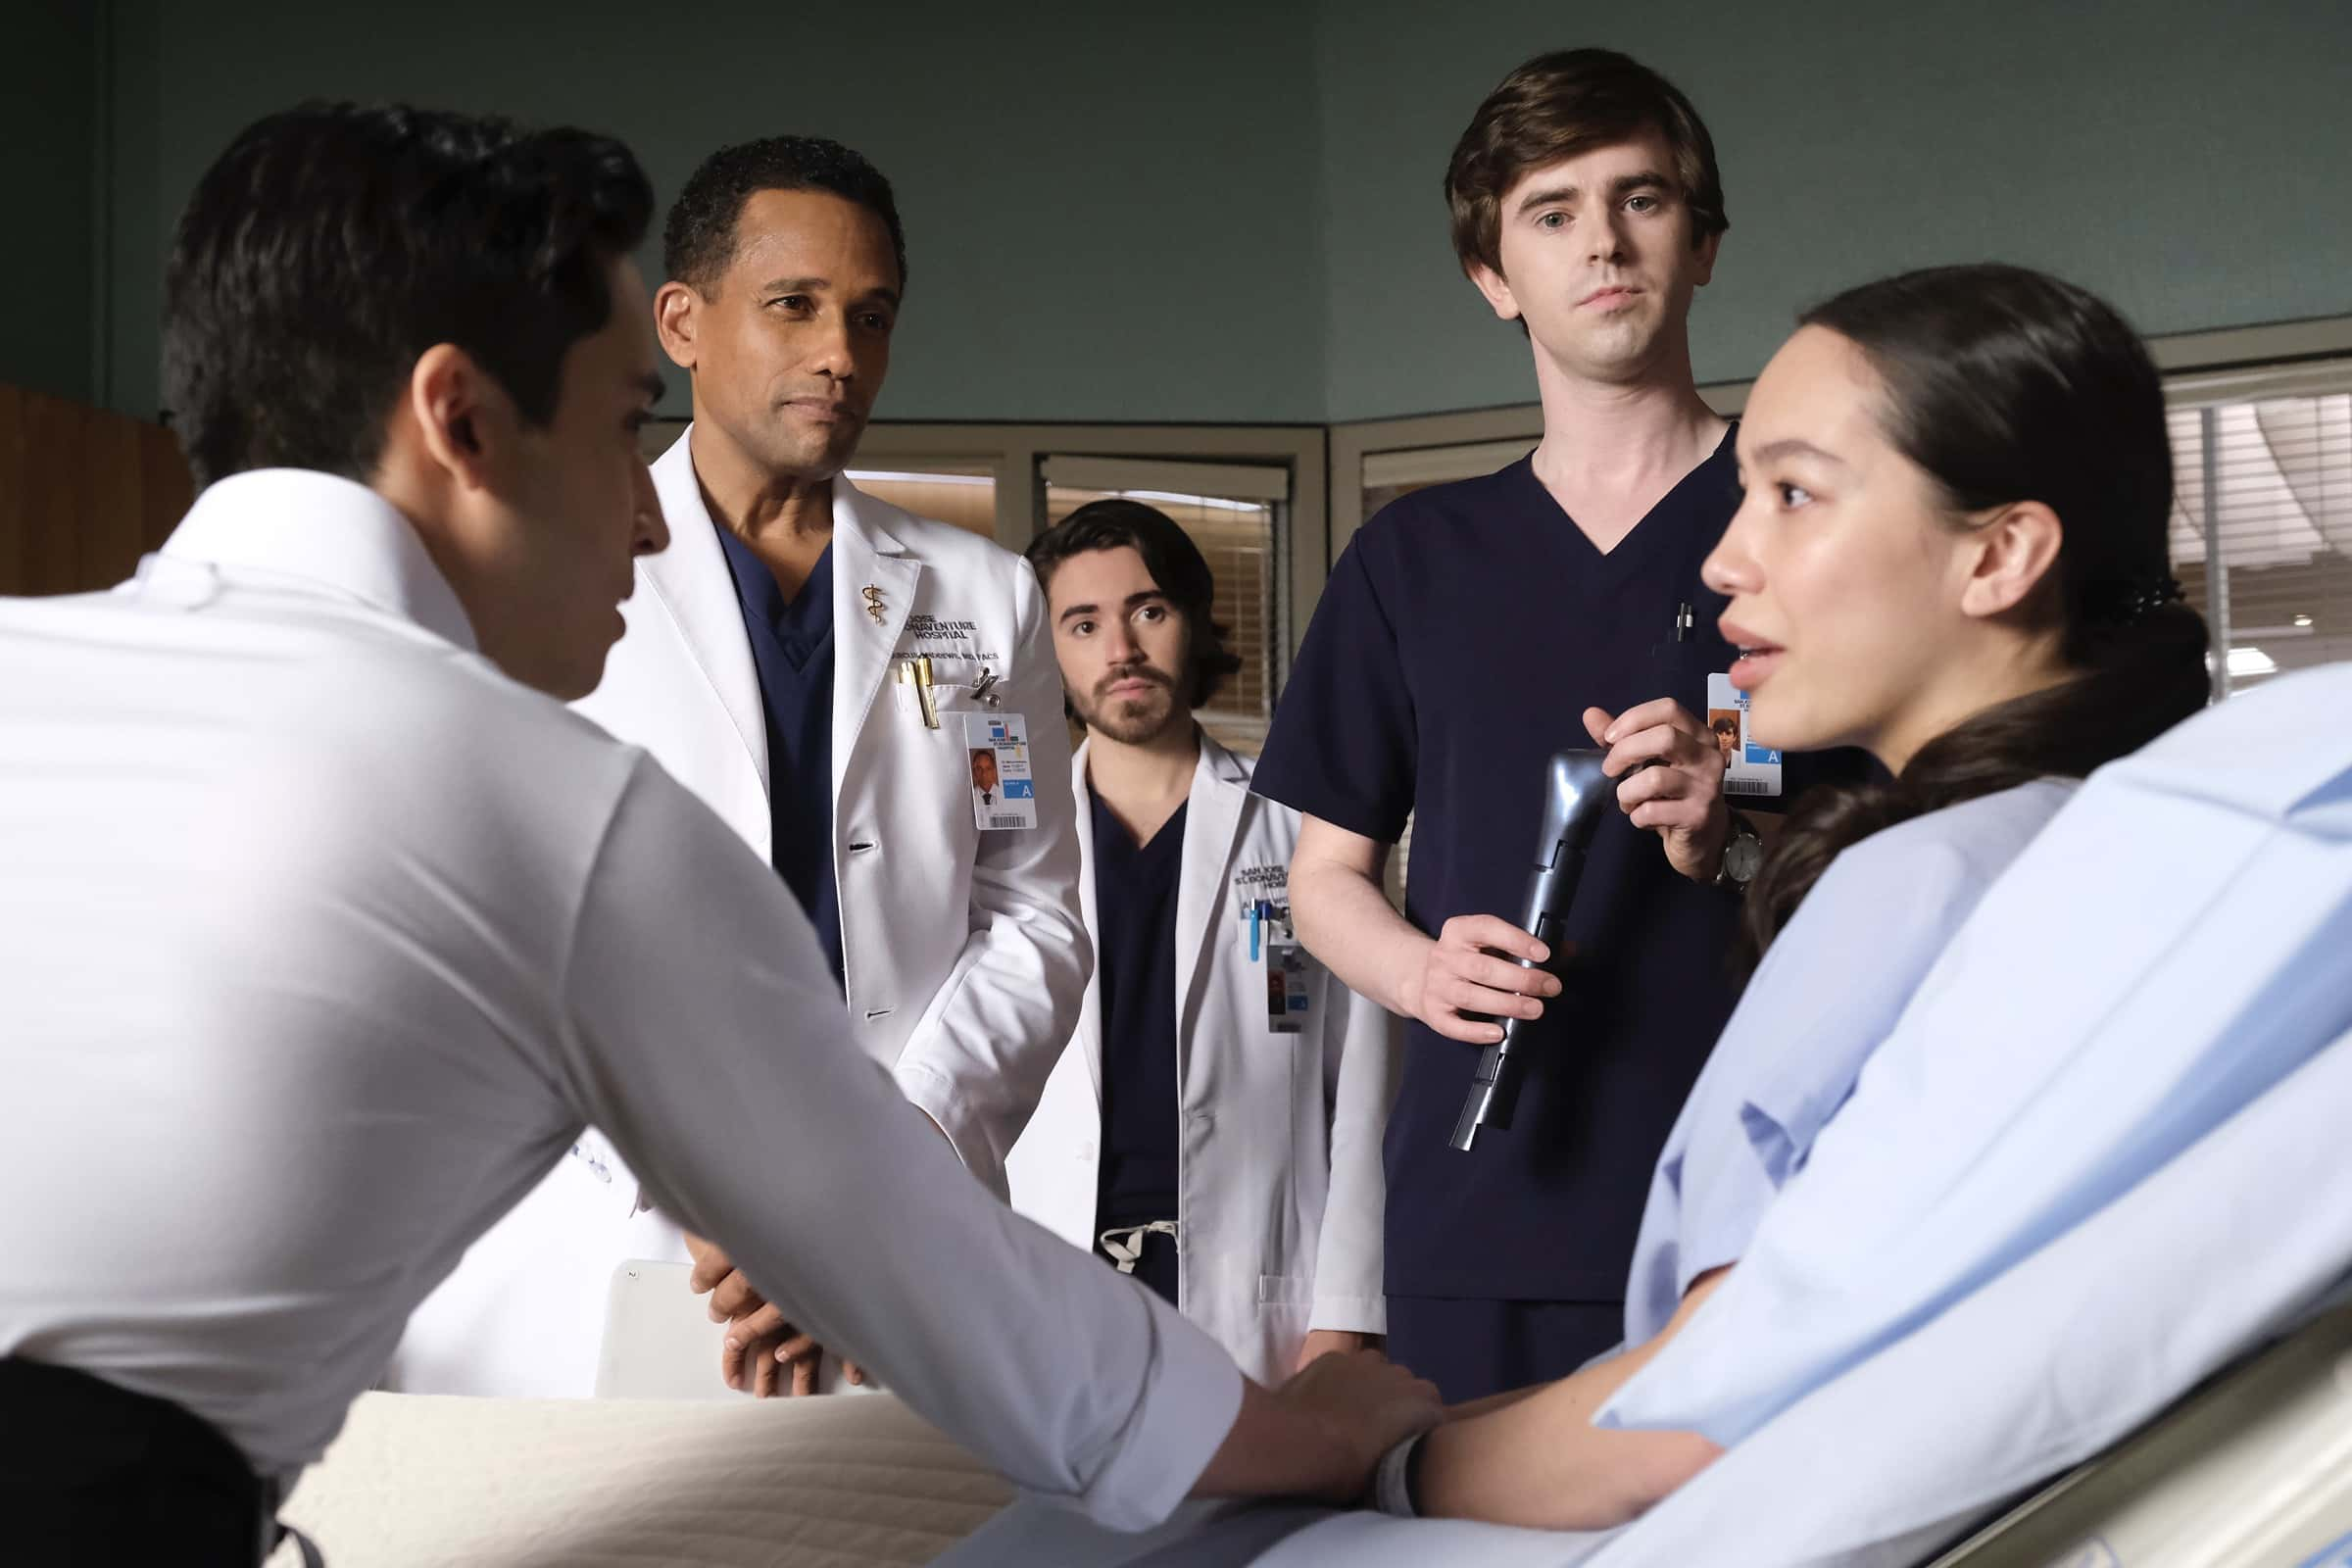 The Good Doctor Season 4 Episode 16 Release Date and Spoilers